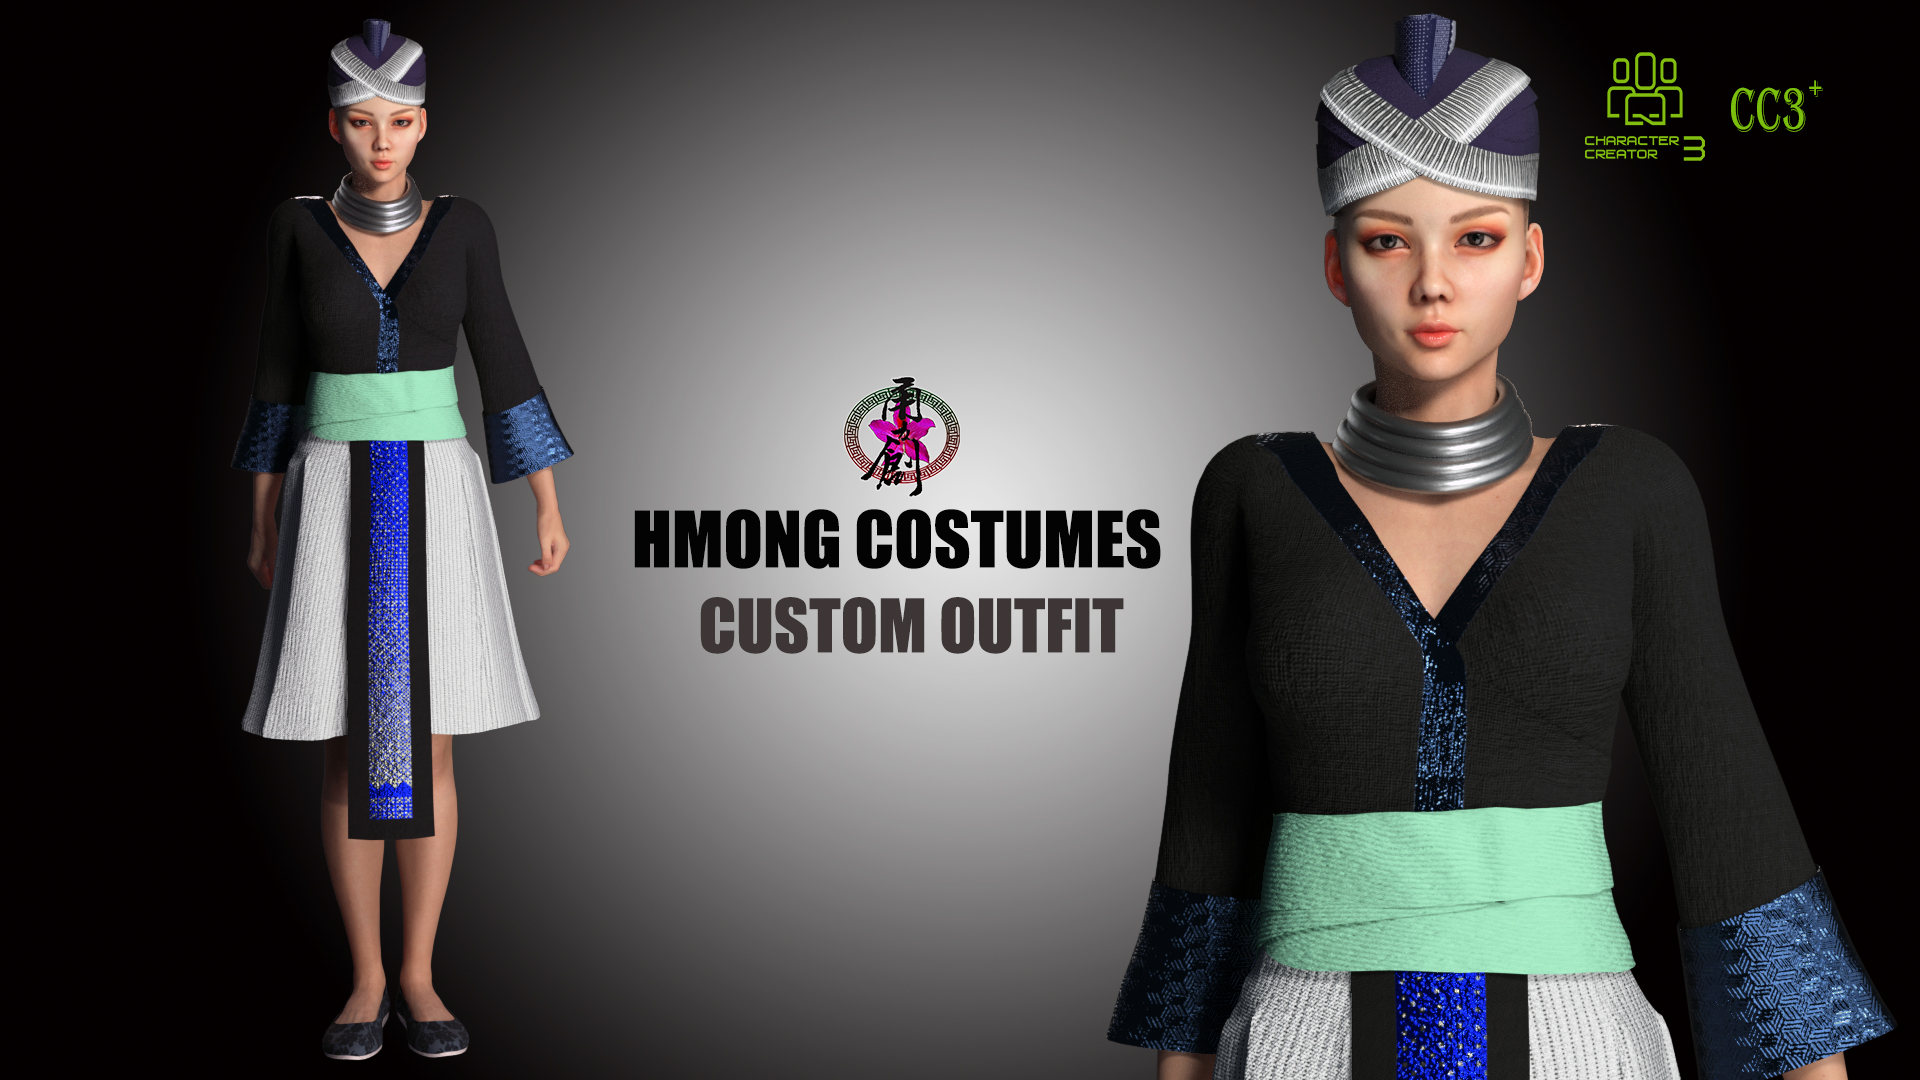 Hmong Costumes-Poster01